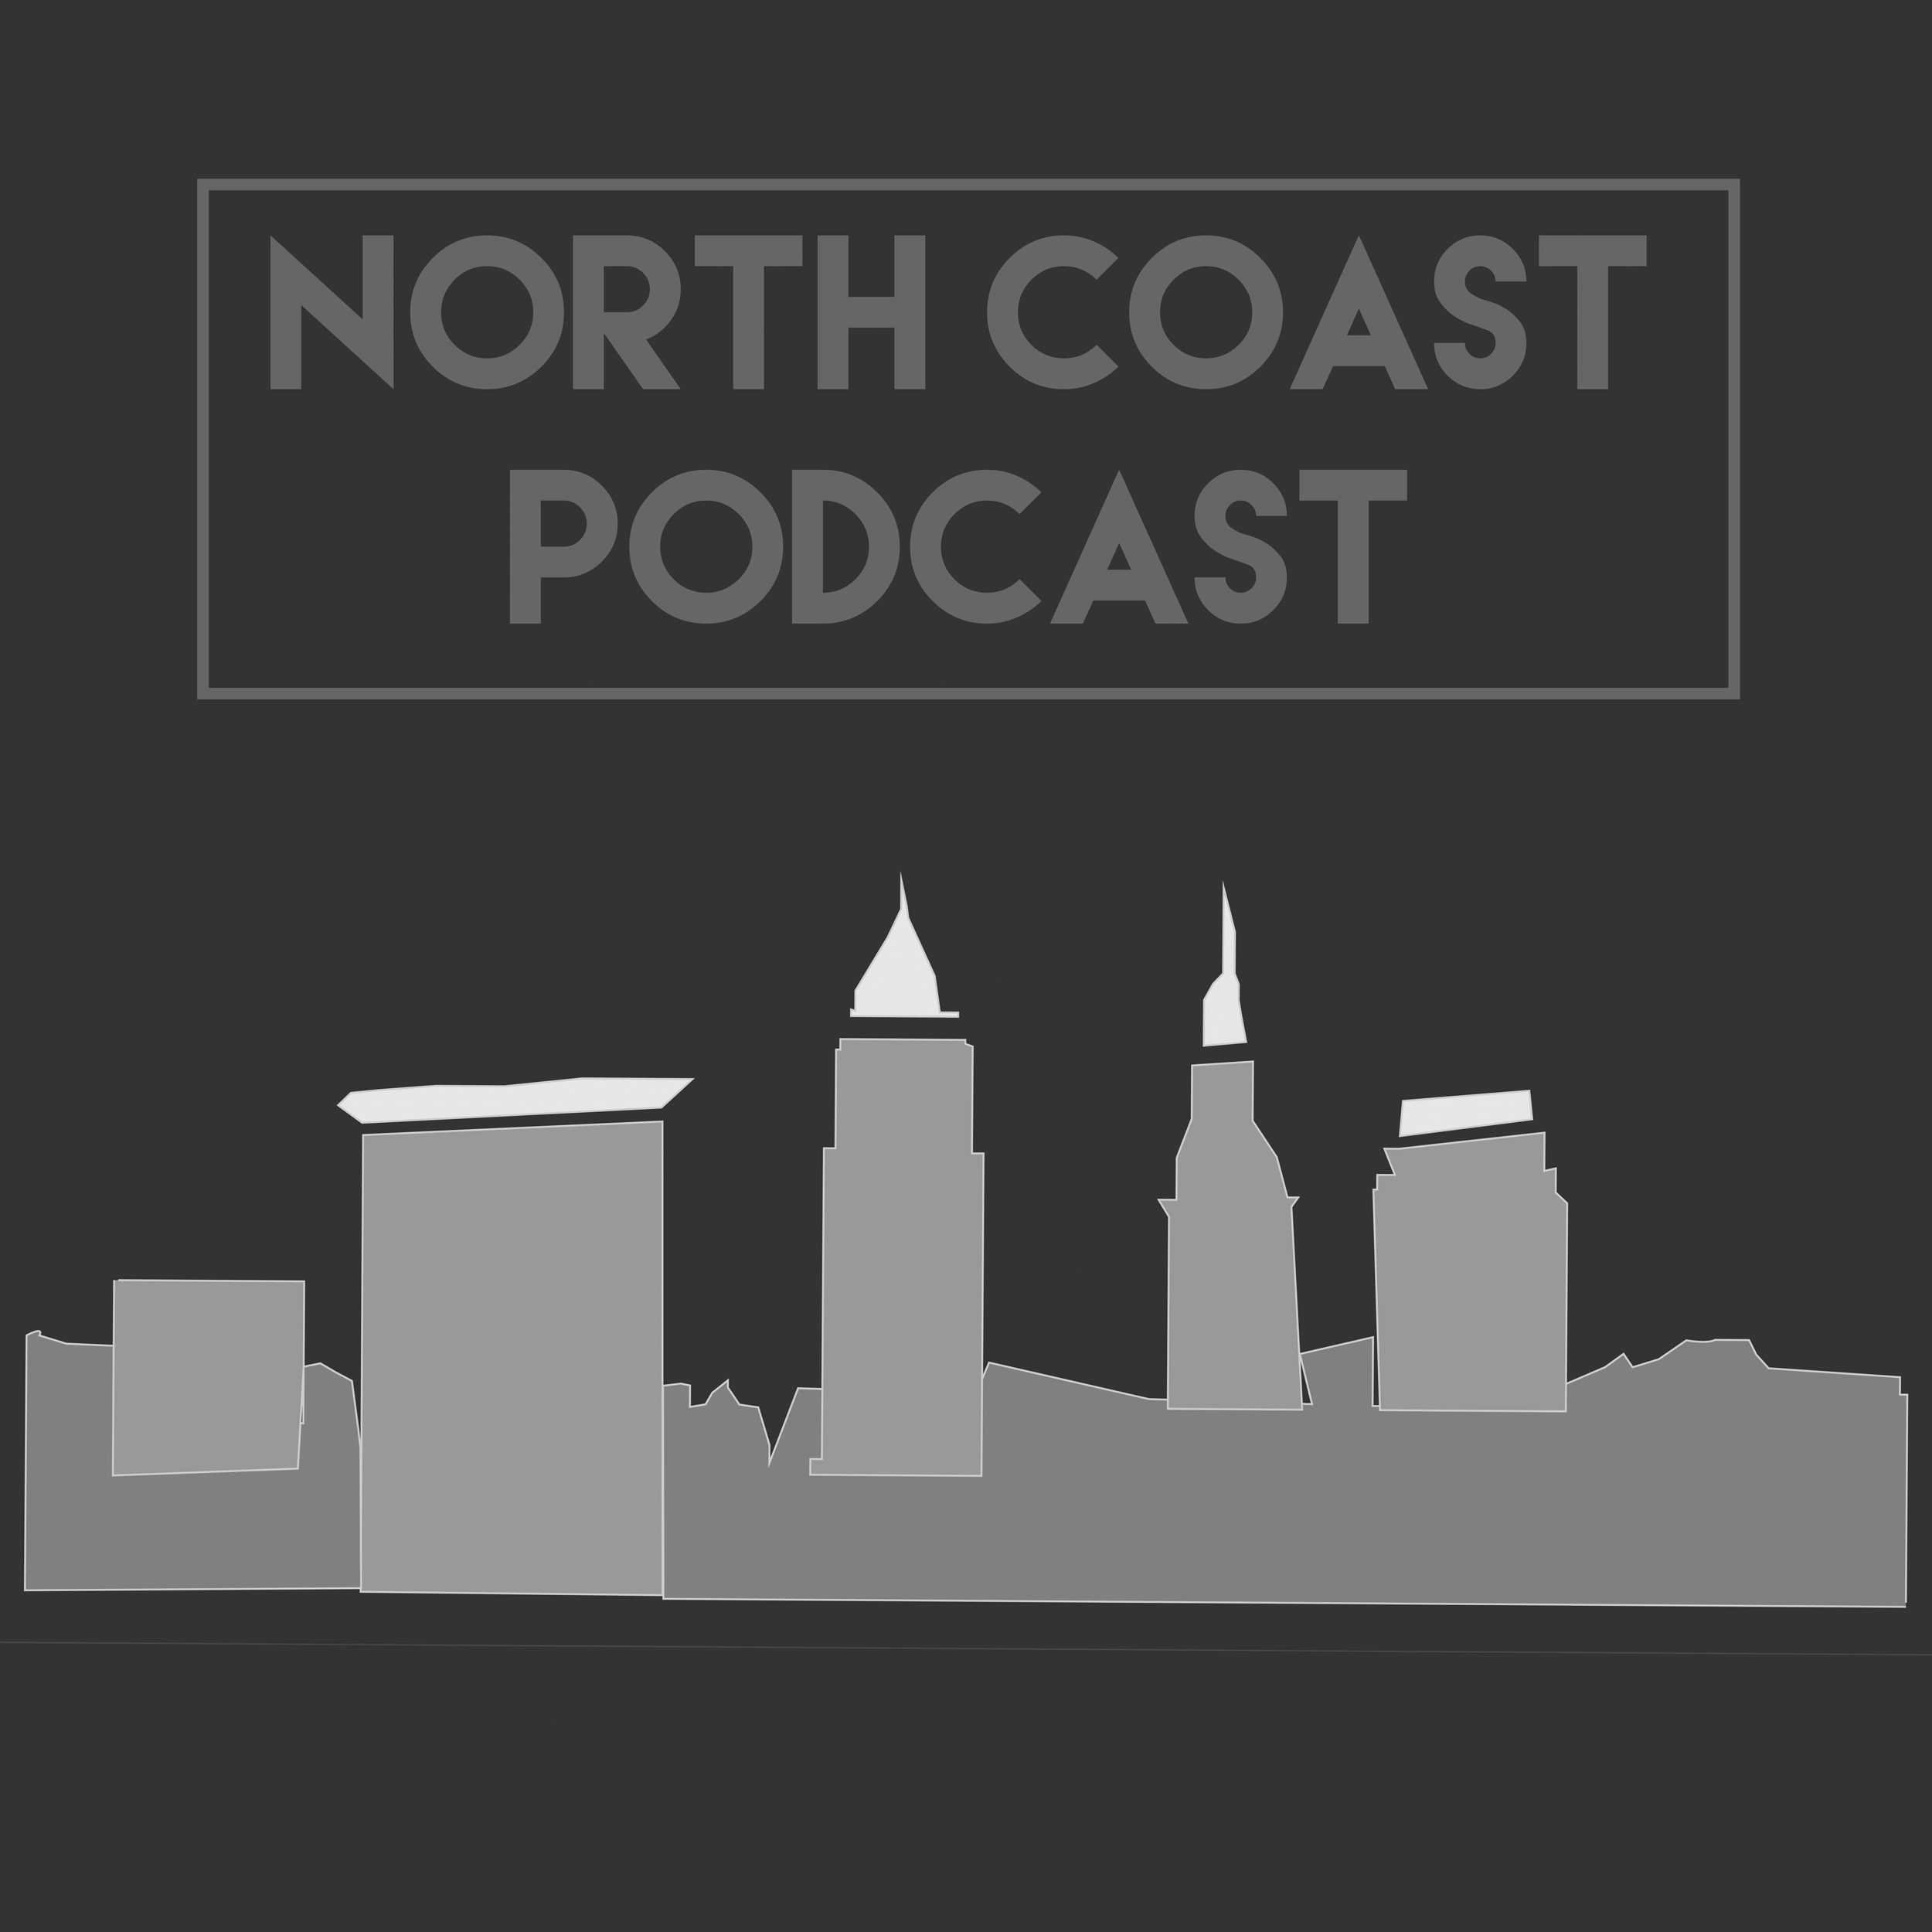 North Coast Podcast